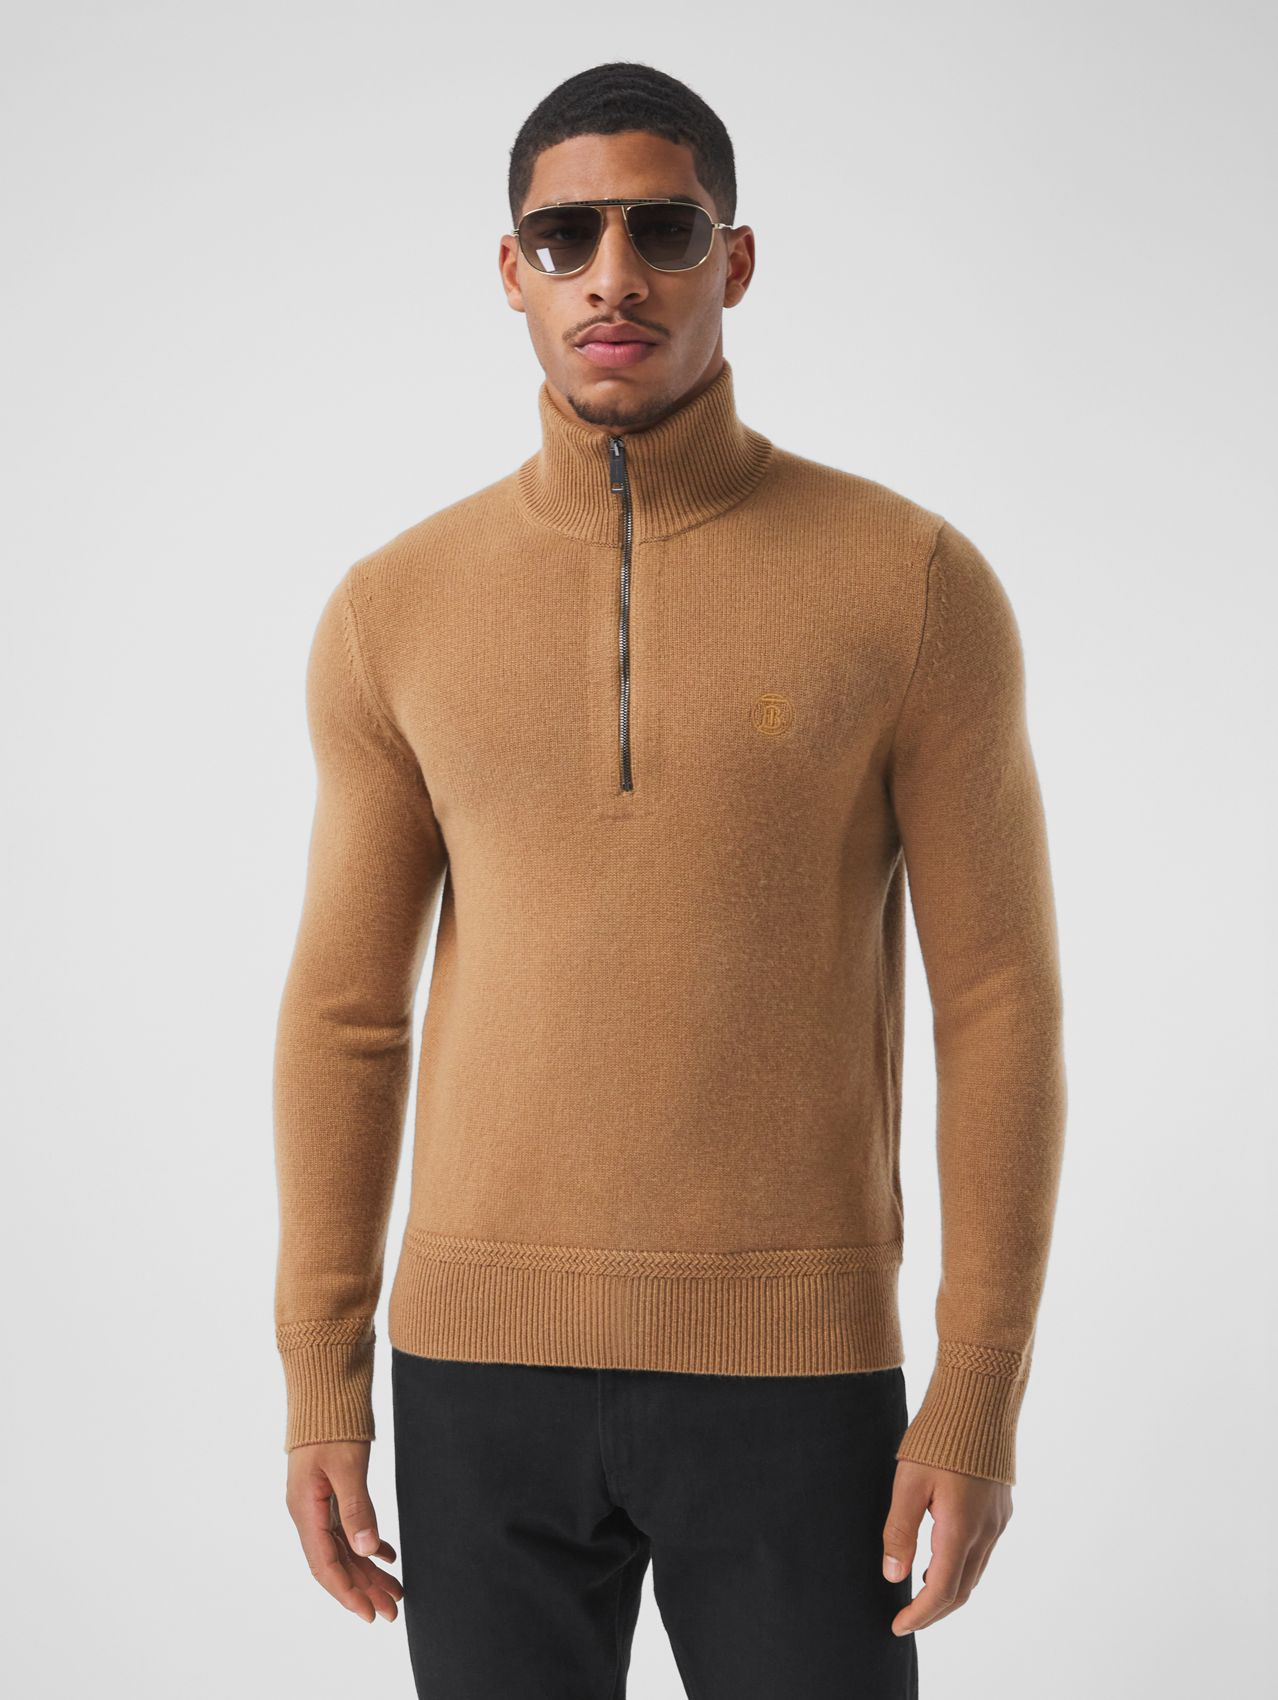 Monogram Motif Cashmere Funnel Neck Sweater in Camel